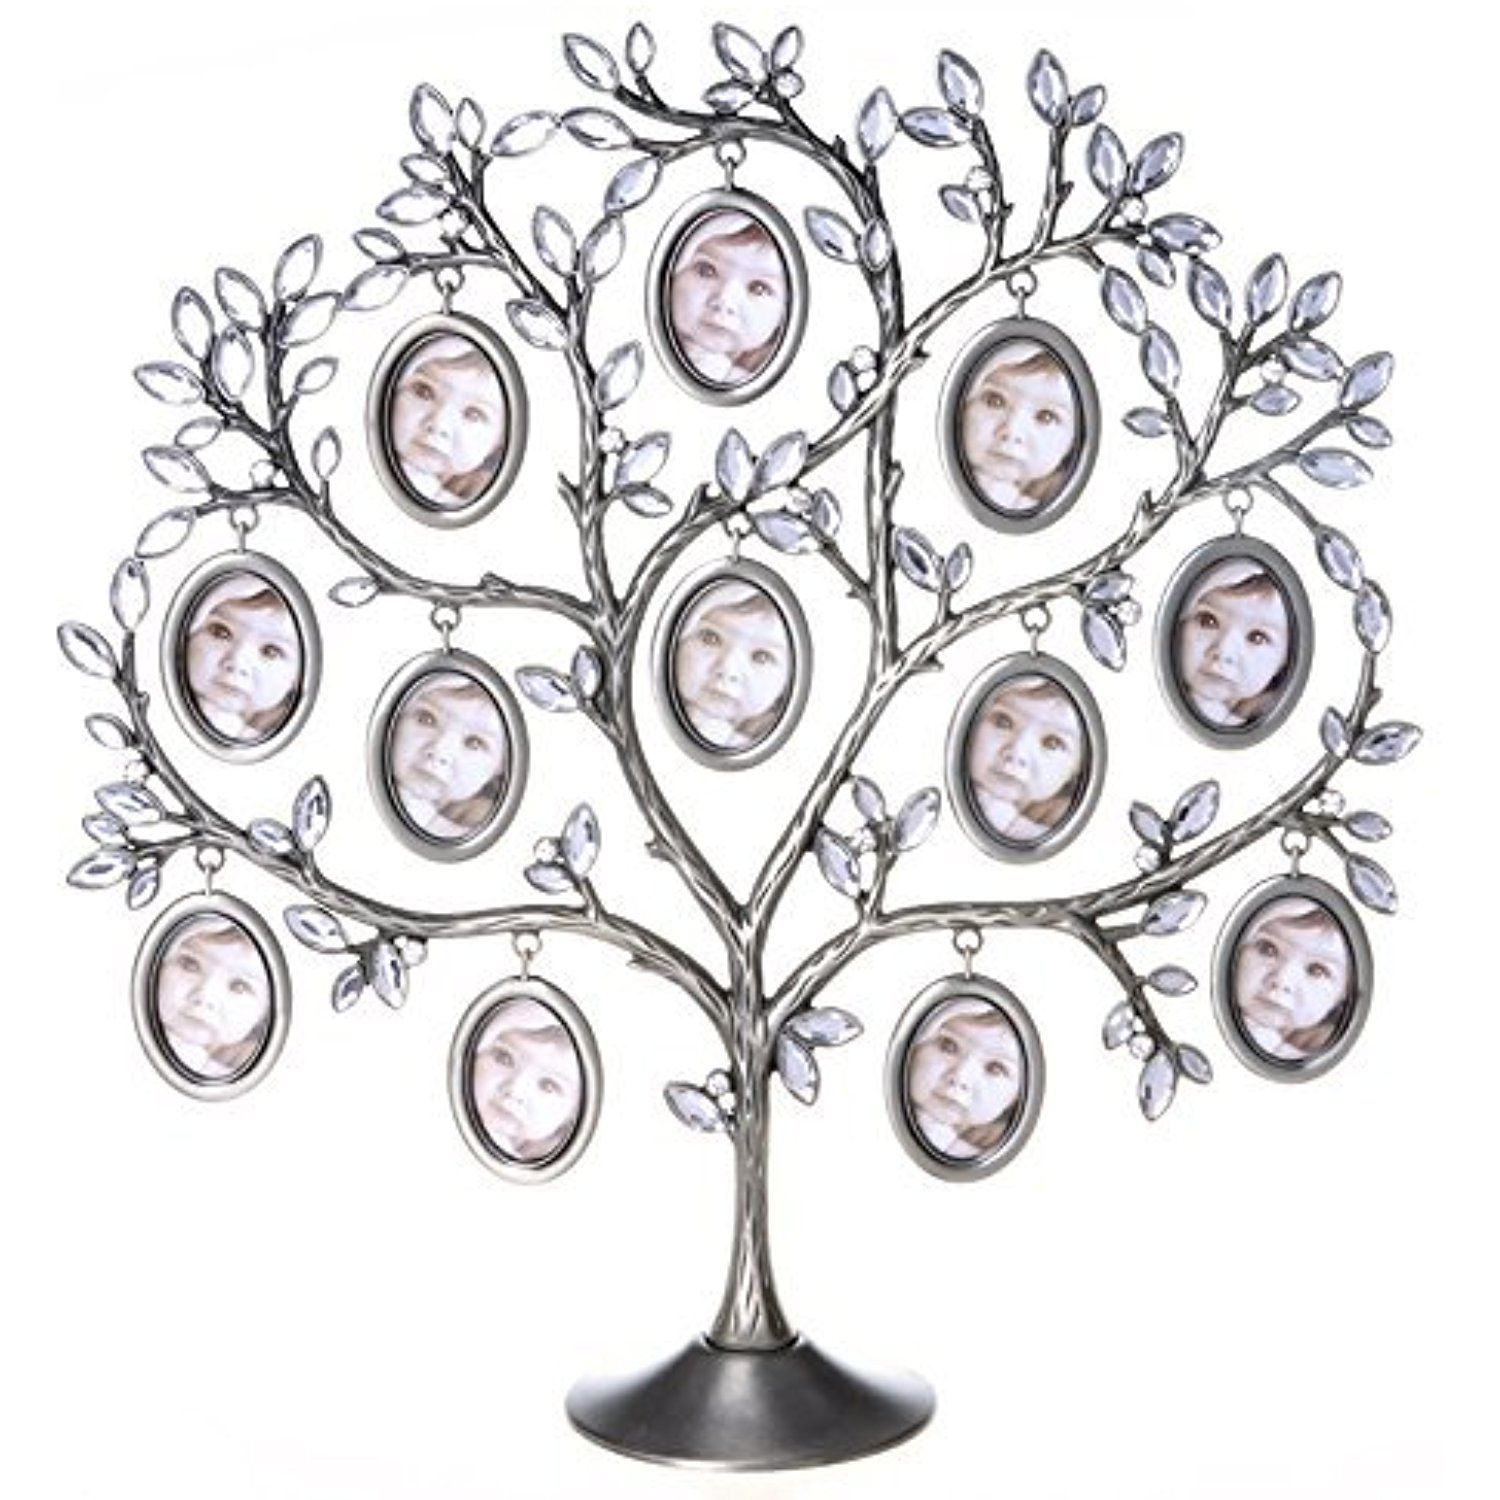 Andy houseware family photo frame tree picture frame